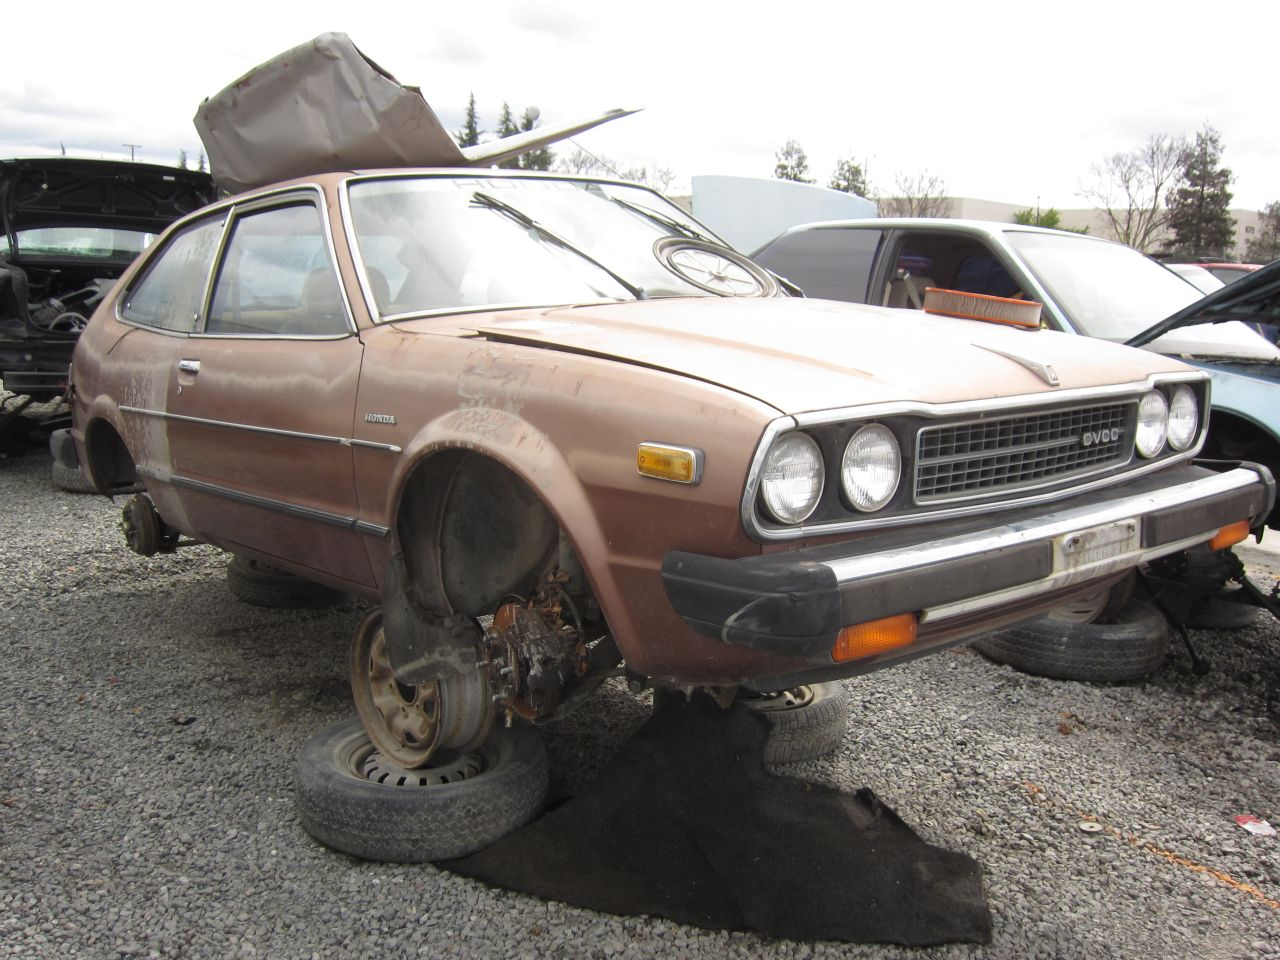 Junkyard Find 1979 Honda Accord Lx The Truth About Cars 2000 Evap System Diagram Car Tuning You Still See Occasional First Gen Buzzing Along But Its Not Worth Fixing One When Head Gasket Finally Goes Or Upholstery Just Gets